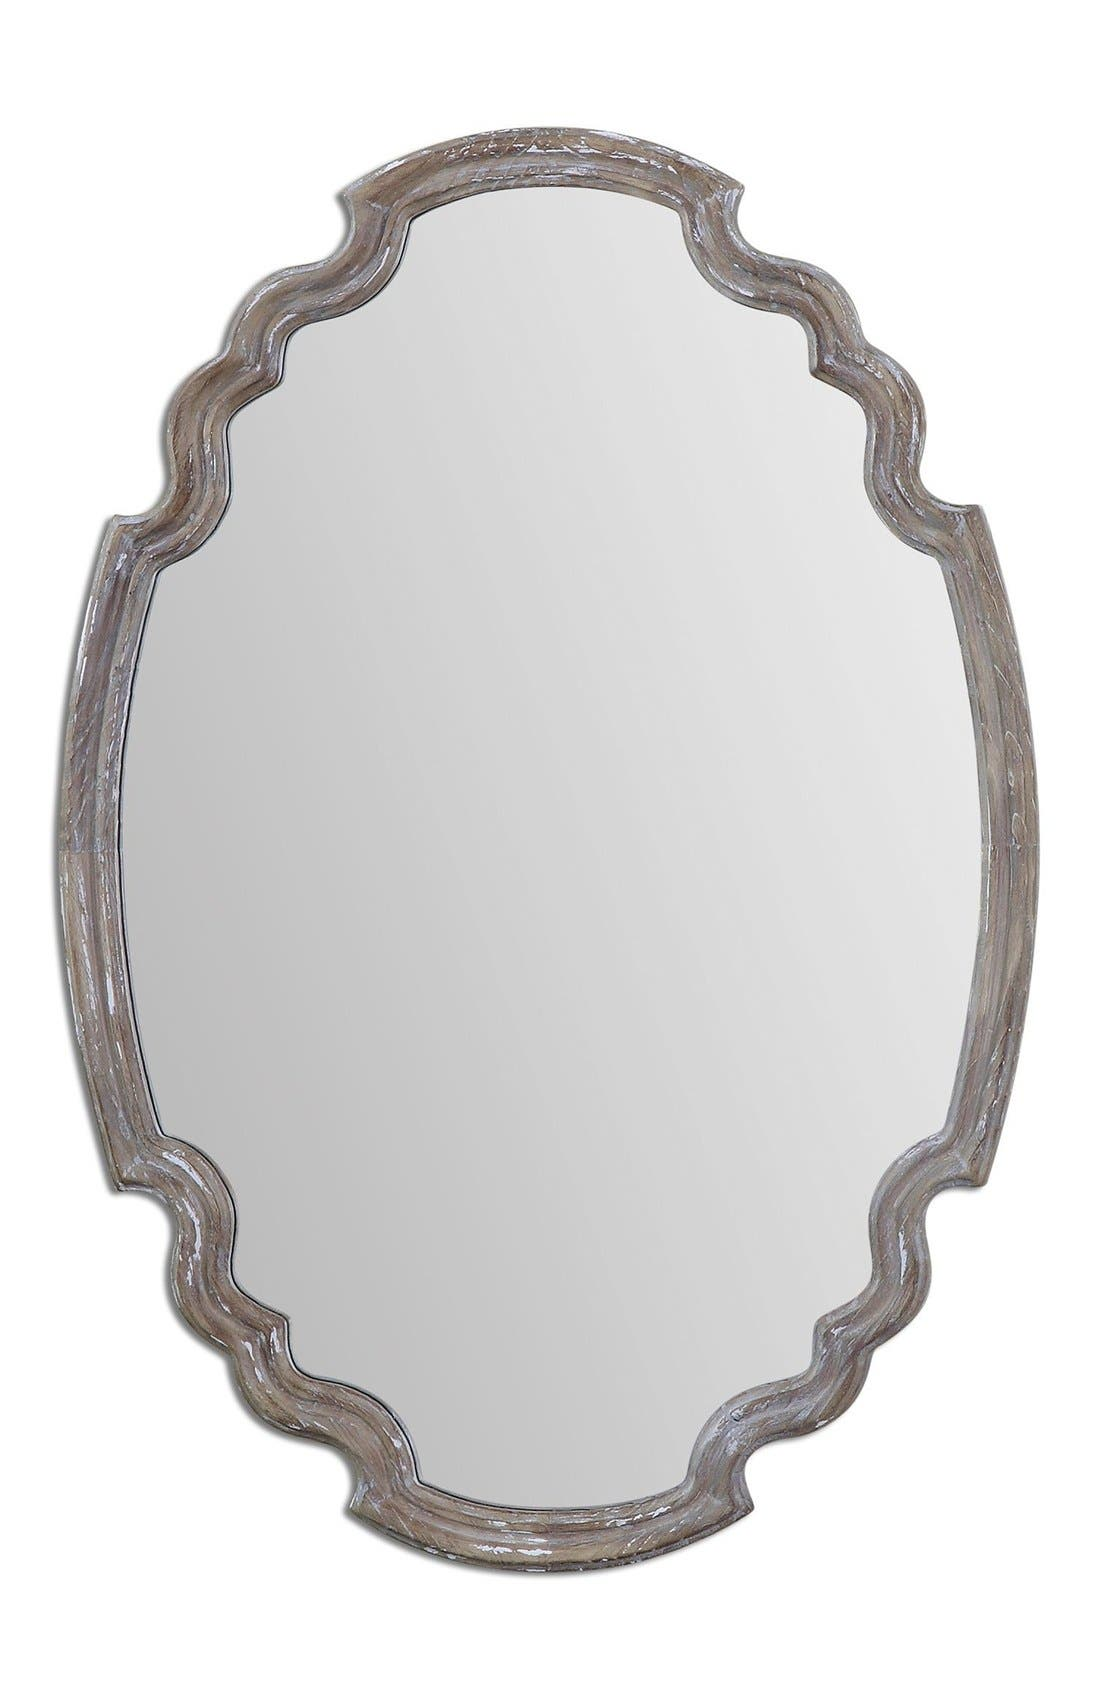 'Ludovica' Aged Finish Oval Wall Mirror,                             Main thumbnail 1, color,                             020